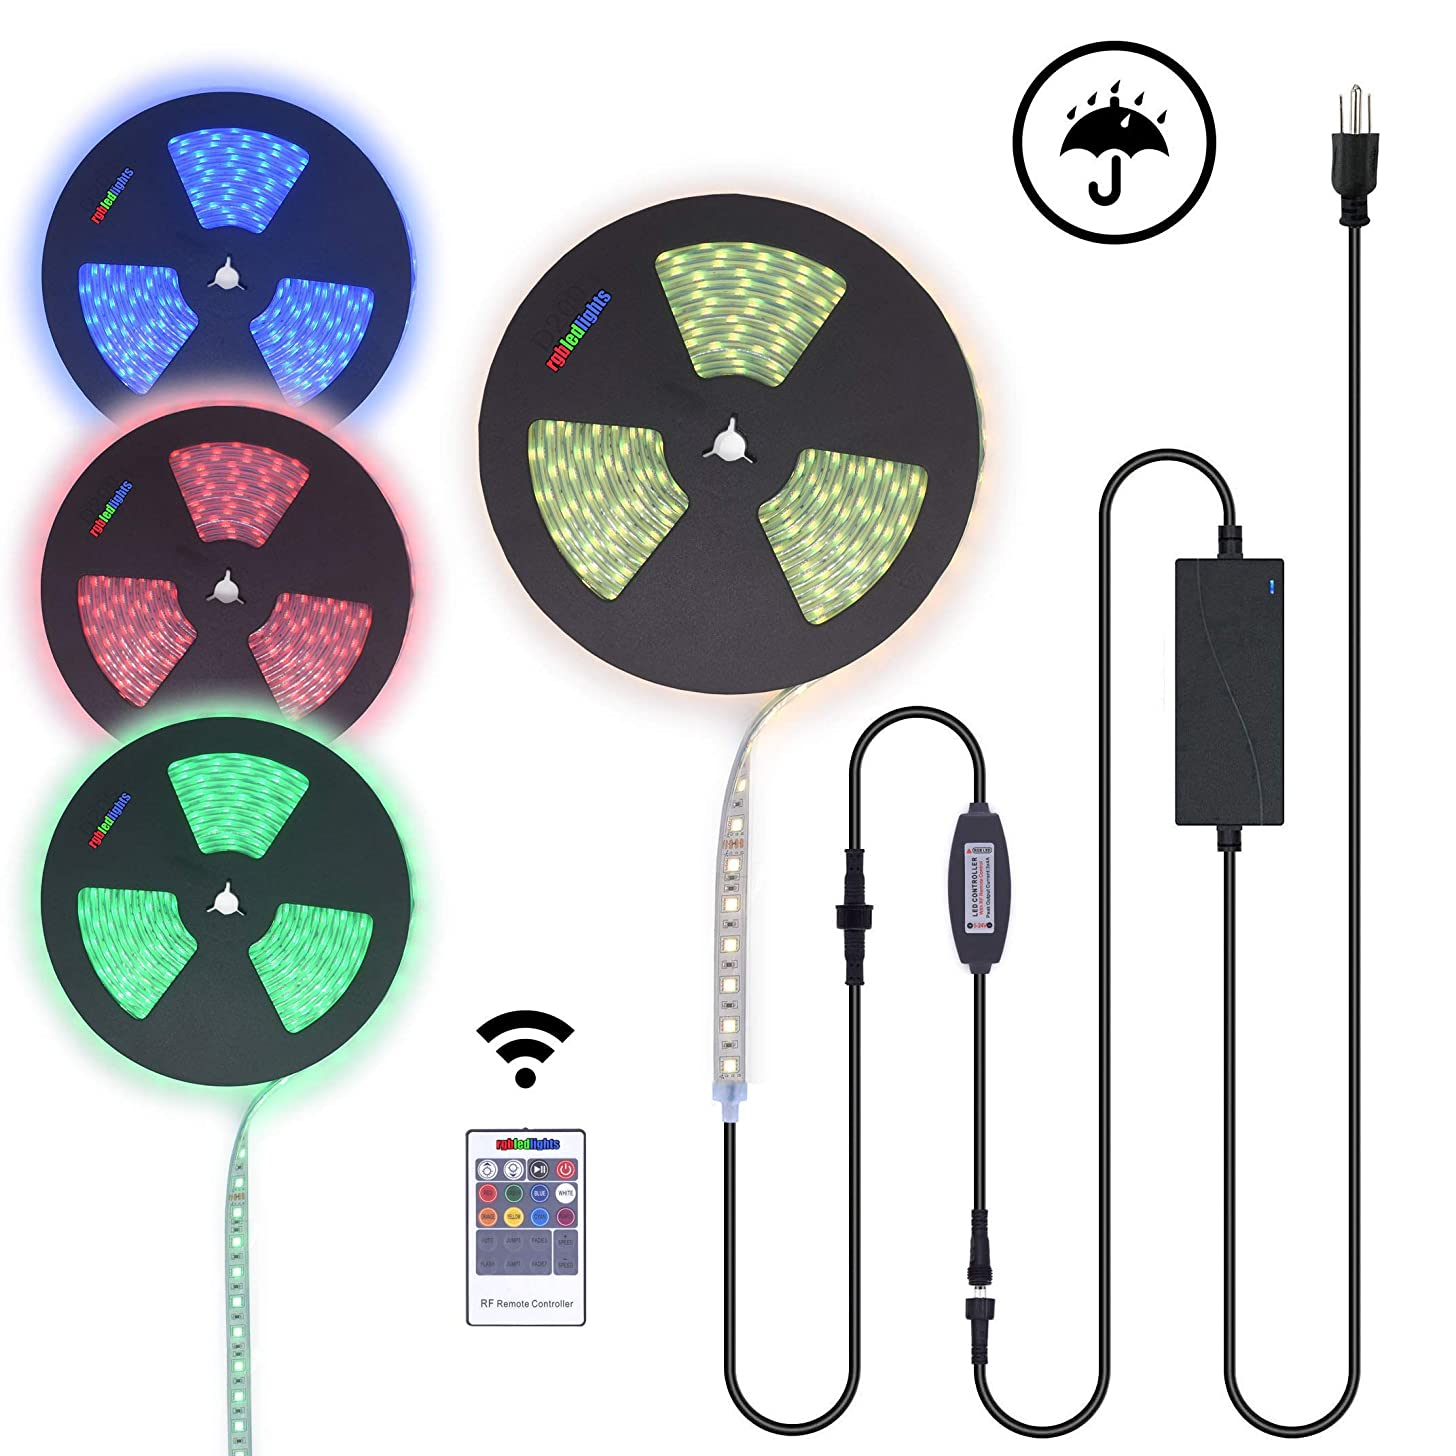 70Ft Long Run 24V RGB LED Strip Light Bar Silicone Encased Waterproof Outdoor Patio Deck Railing String Rope Light Plug & Play Kit with RF Controller and Power